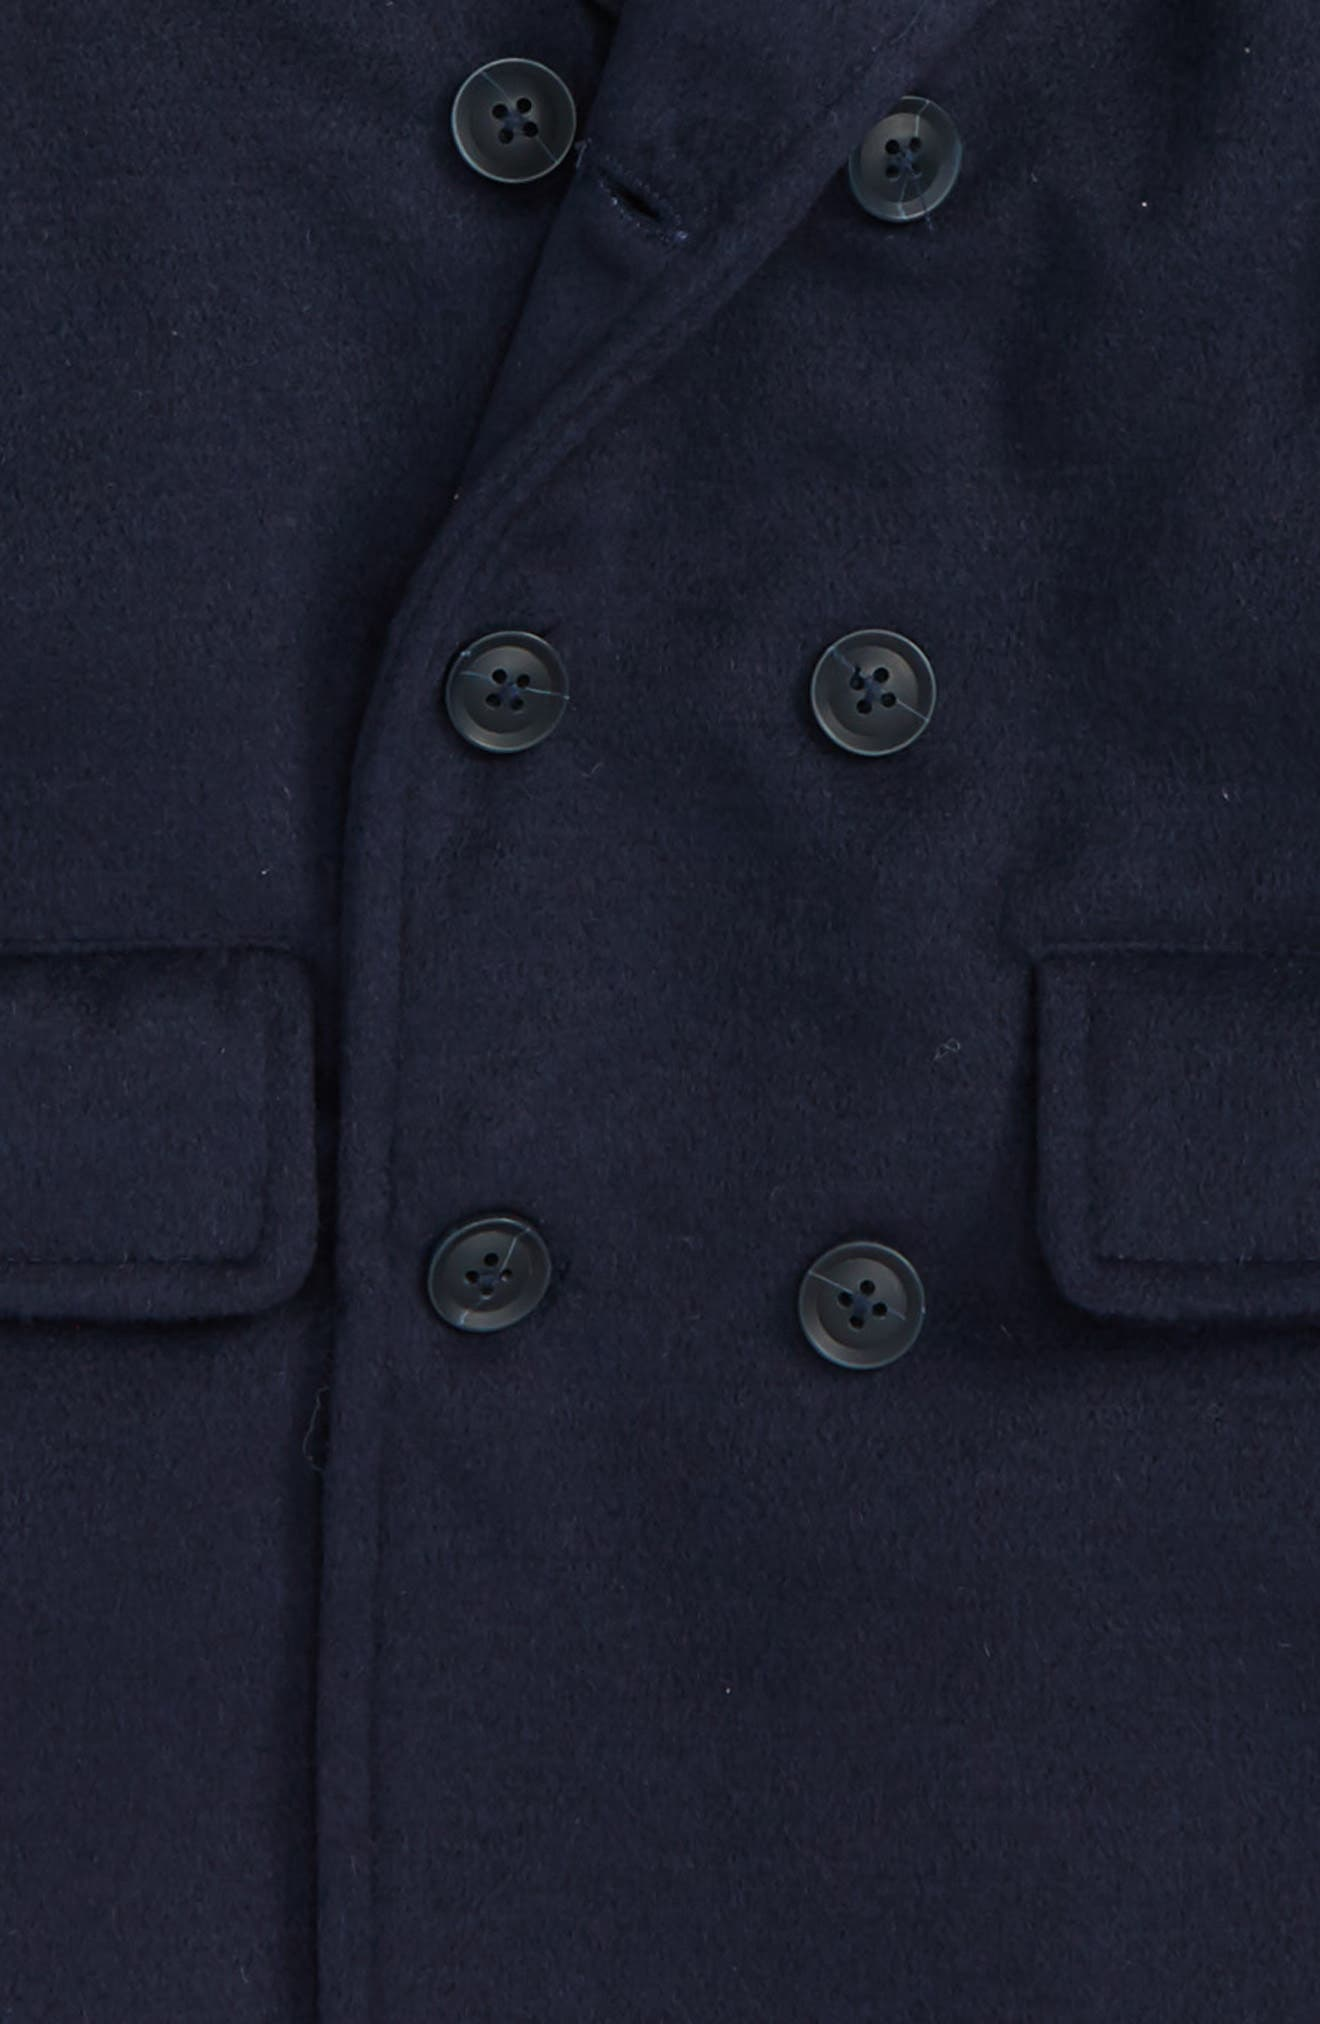 Double Breasted Peacoat,                             Alternate thumbnail 2, color,                             411